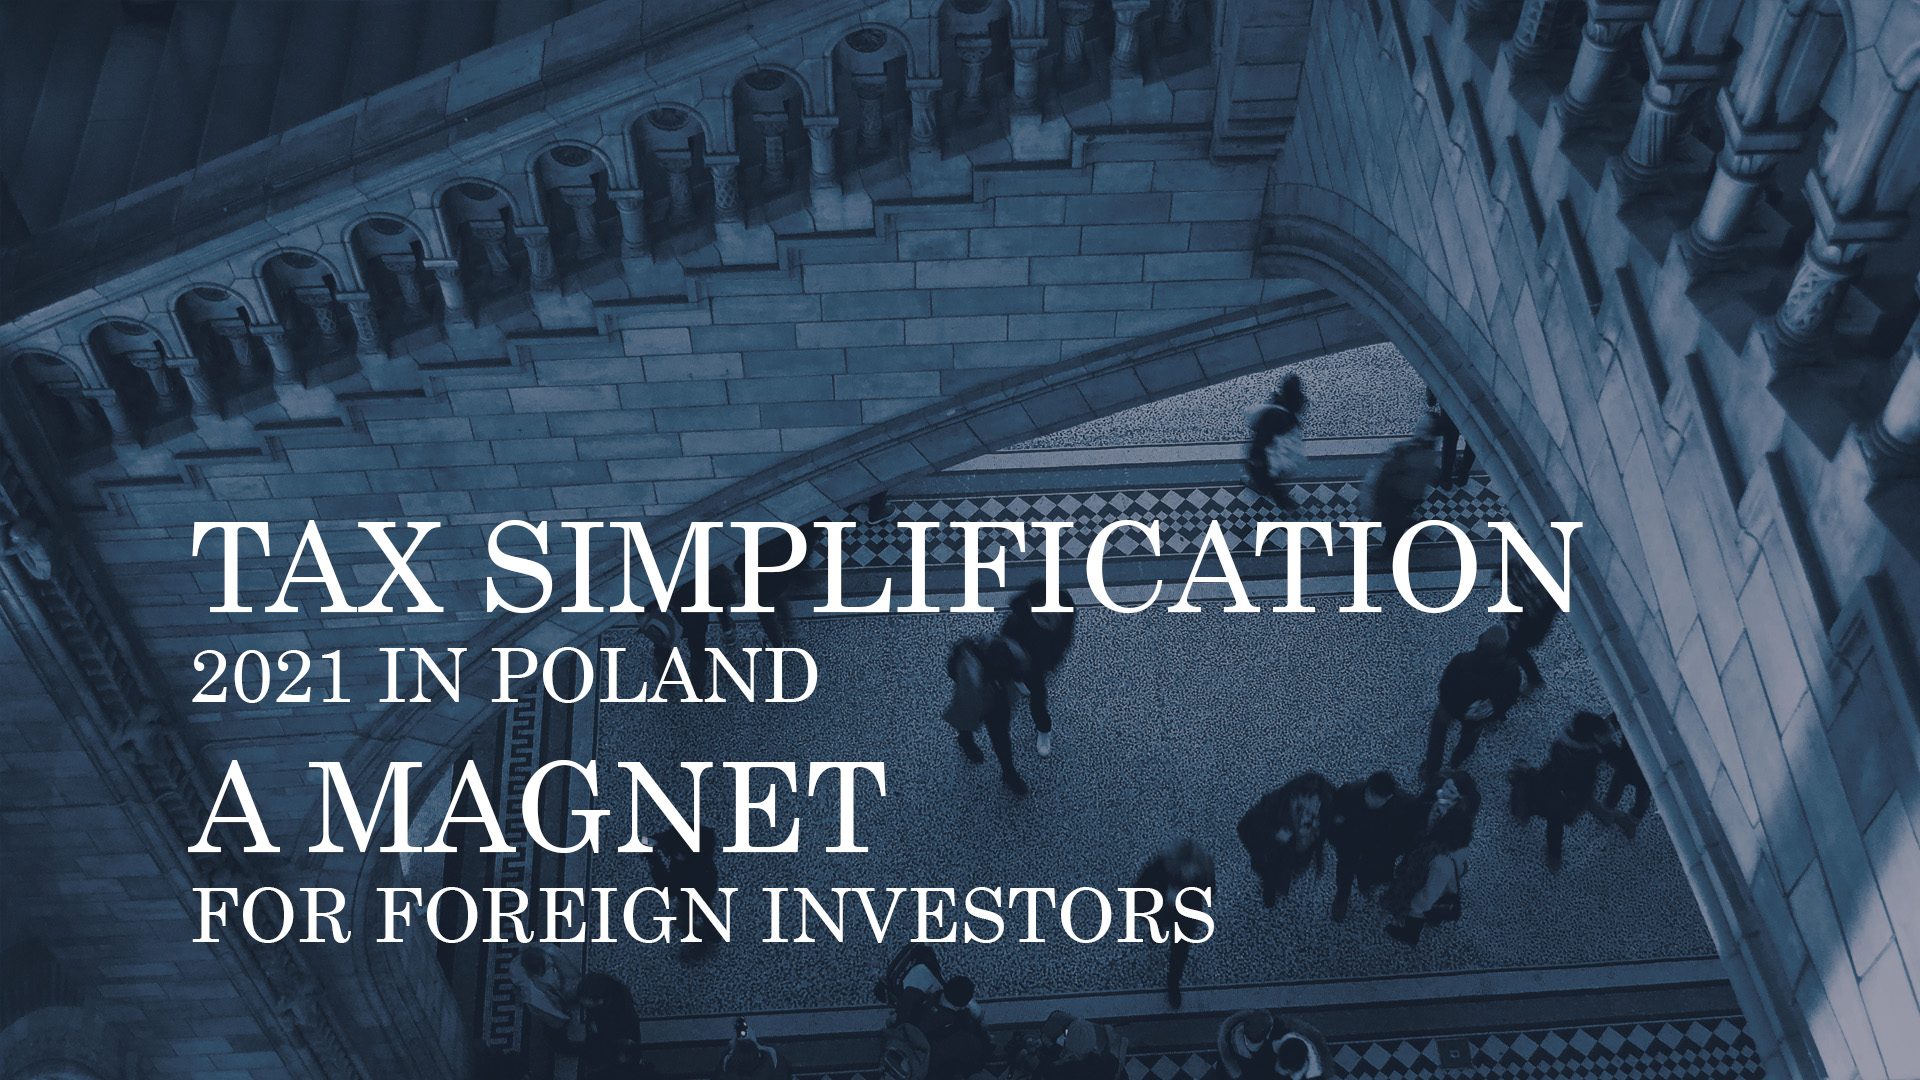 TAX SIMPLIFICATION 2021 IN POLAND – A MAGNET FOR FOREIGN INVESTORS